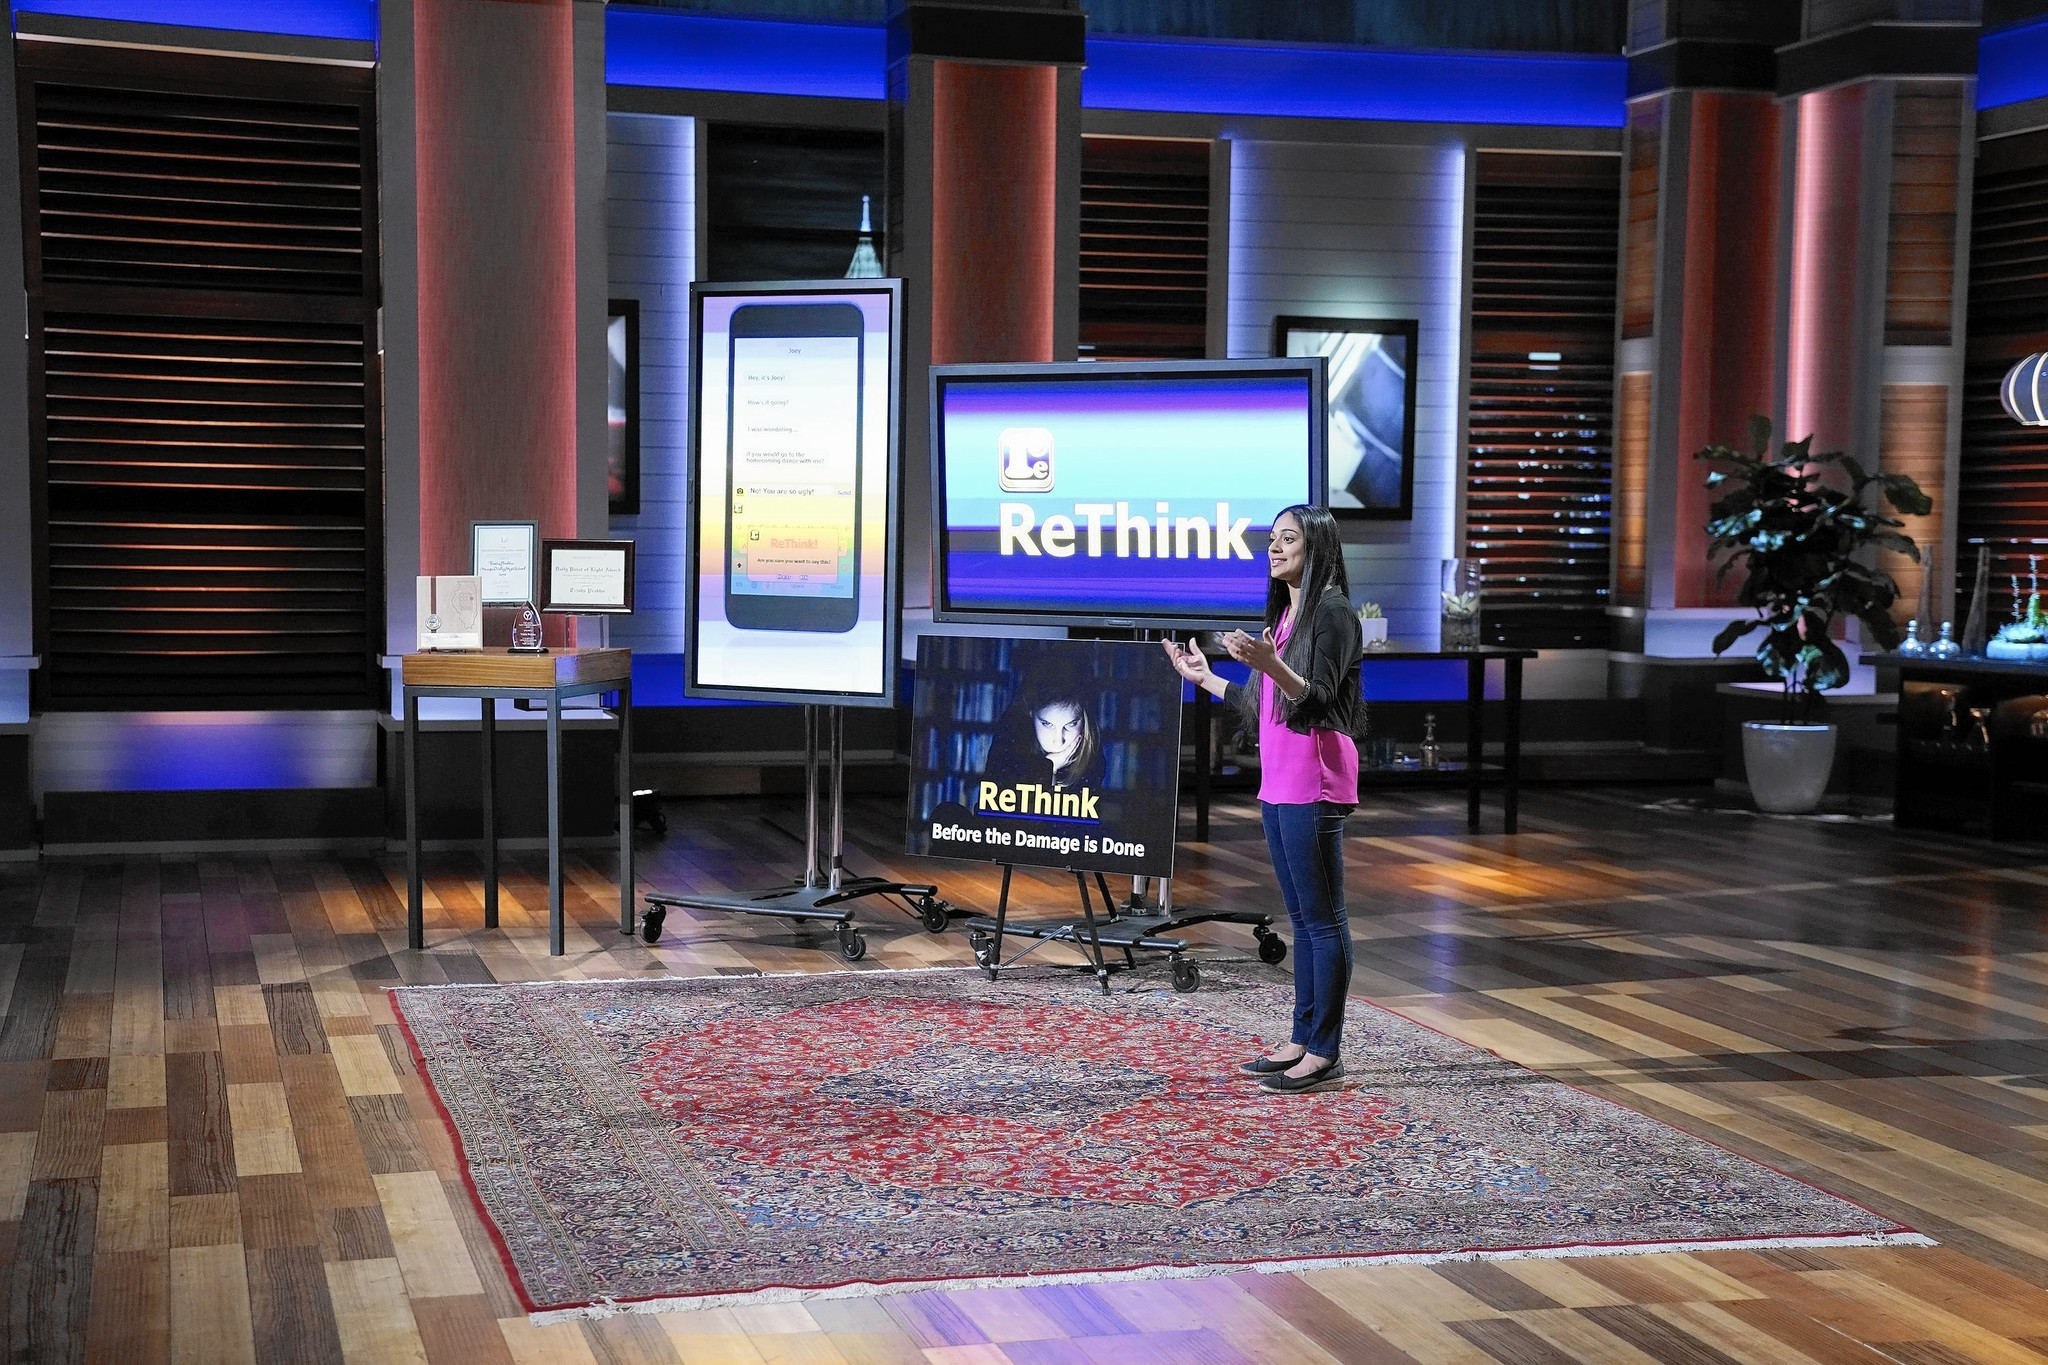 Trisha Prabhu, creator of Rethink, an app to stop cyberbullying